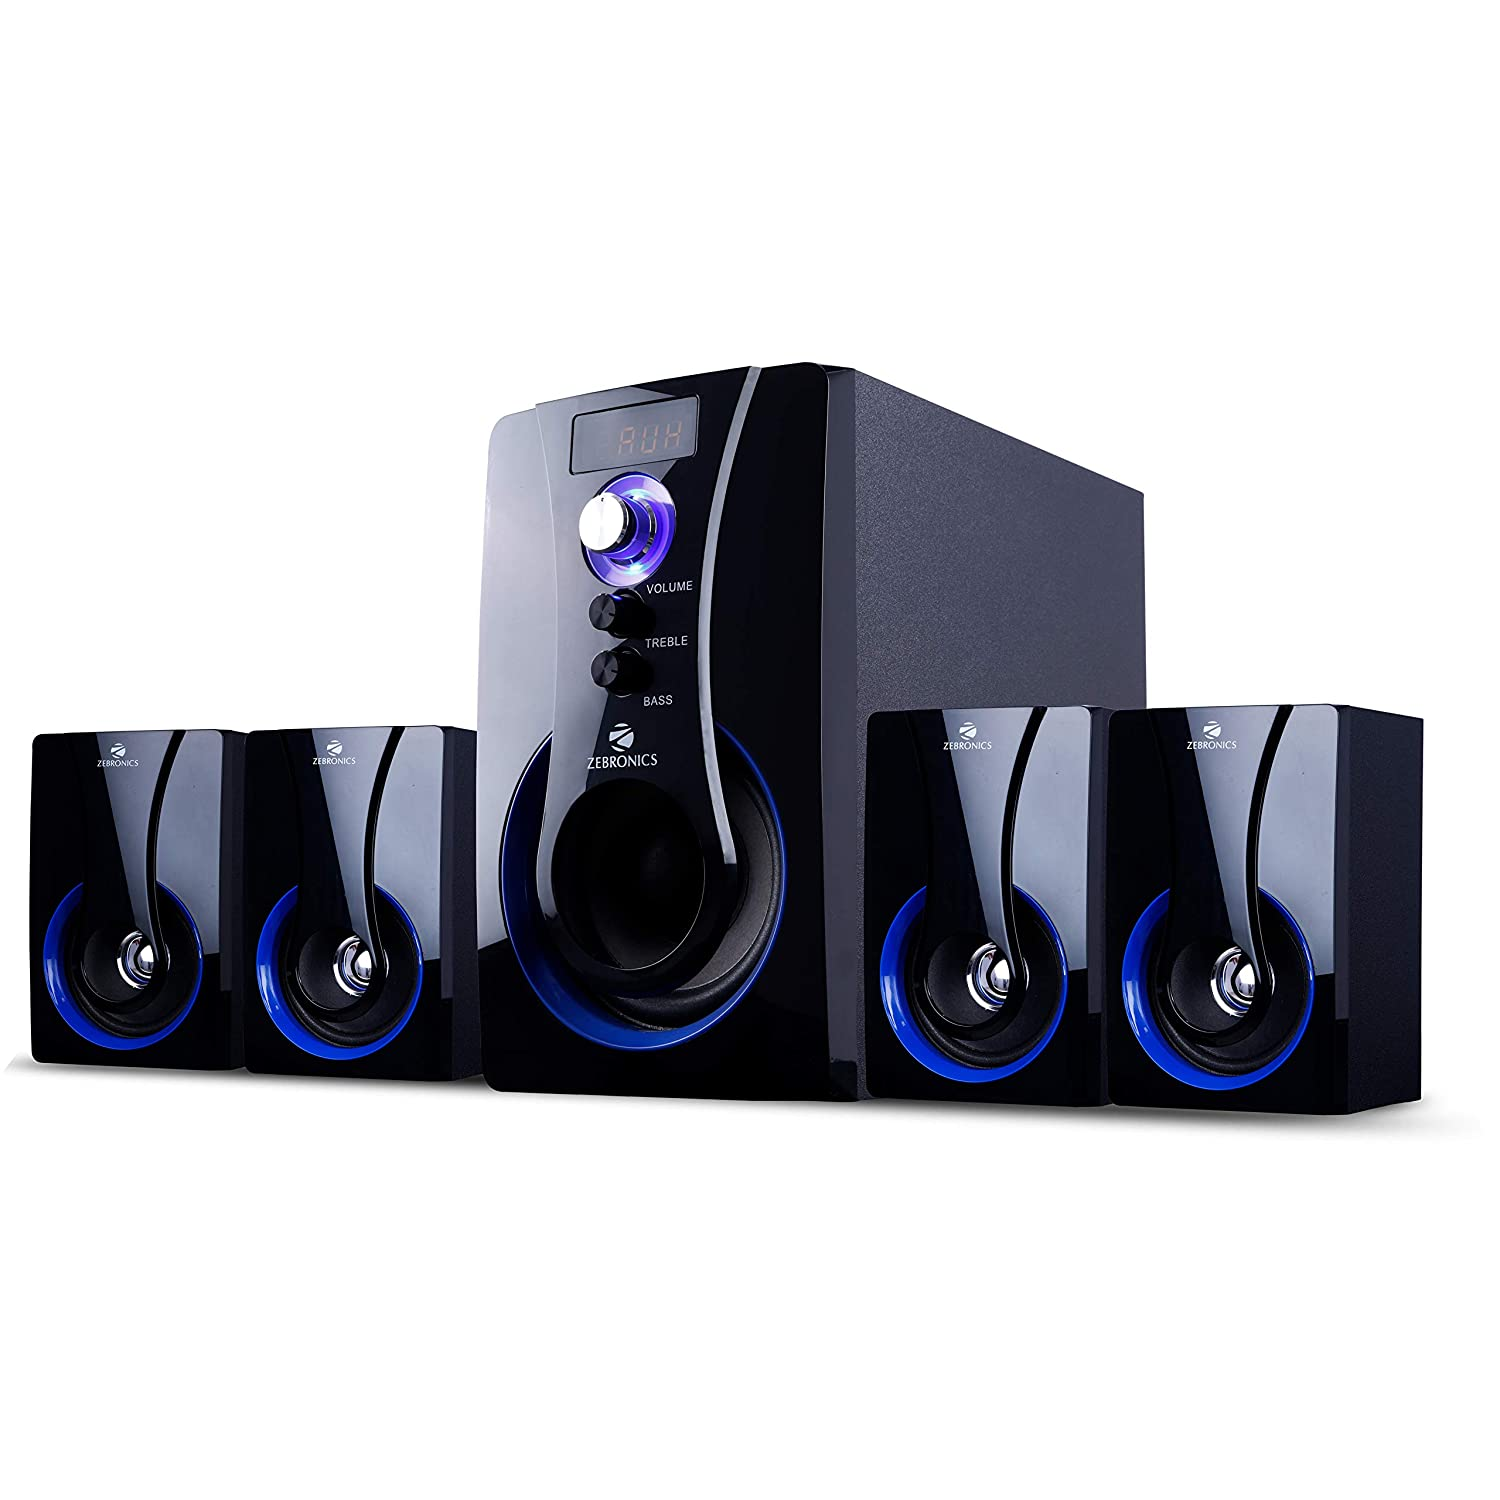 Renewed  Zebronics 4.1 Multimedia SW3490 RUCF Wired Home Audio Speaker Black, 4.1 Channel PC Speakers